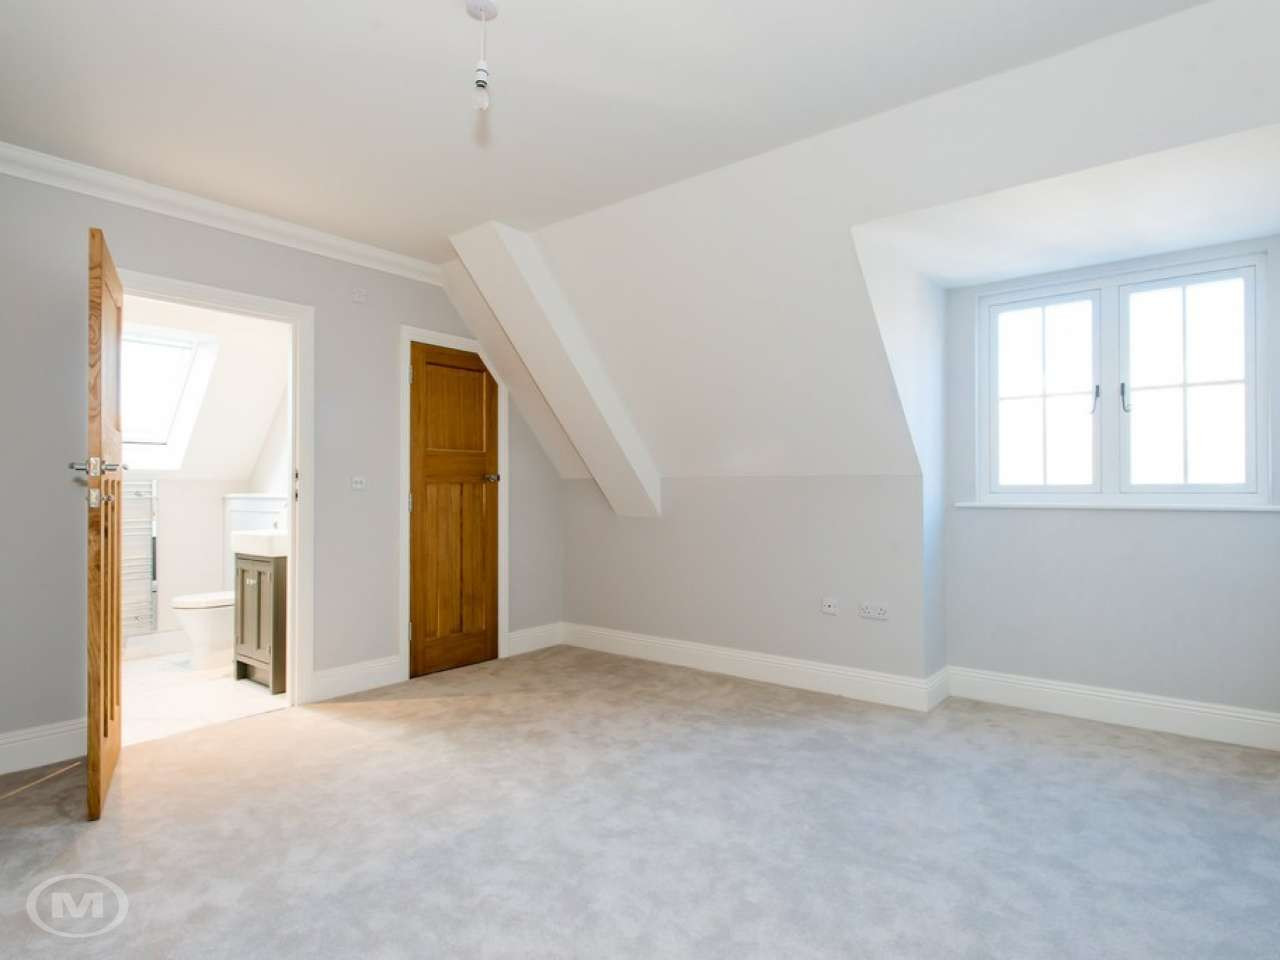 hardwood flooring in milton ontario of mitchells estate agents in new milton highcliffe and mudeford intended for ringwood road highcliffe on sea christchurch bh23 5rd